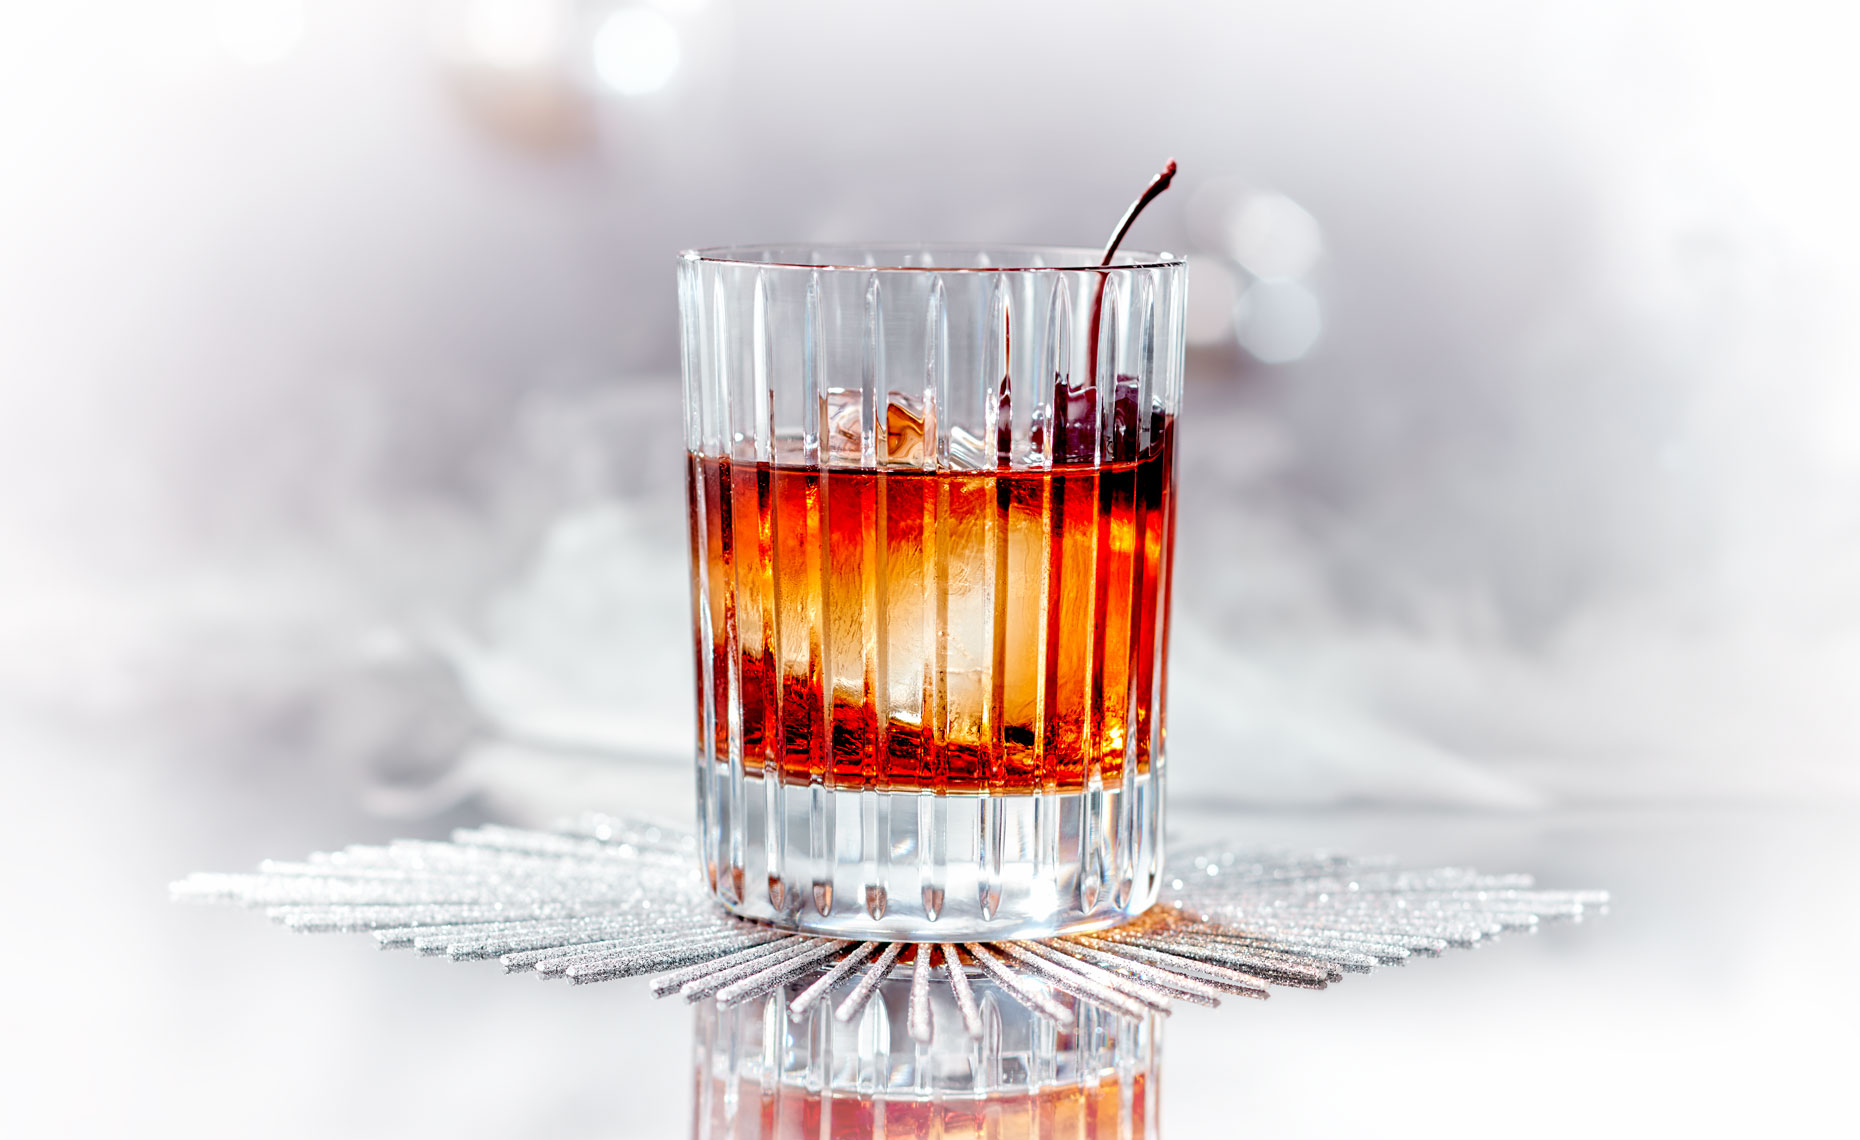 Winter Drink Photography © Sasha Gitin